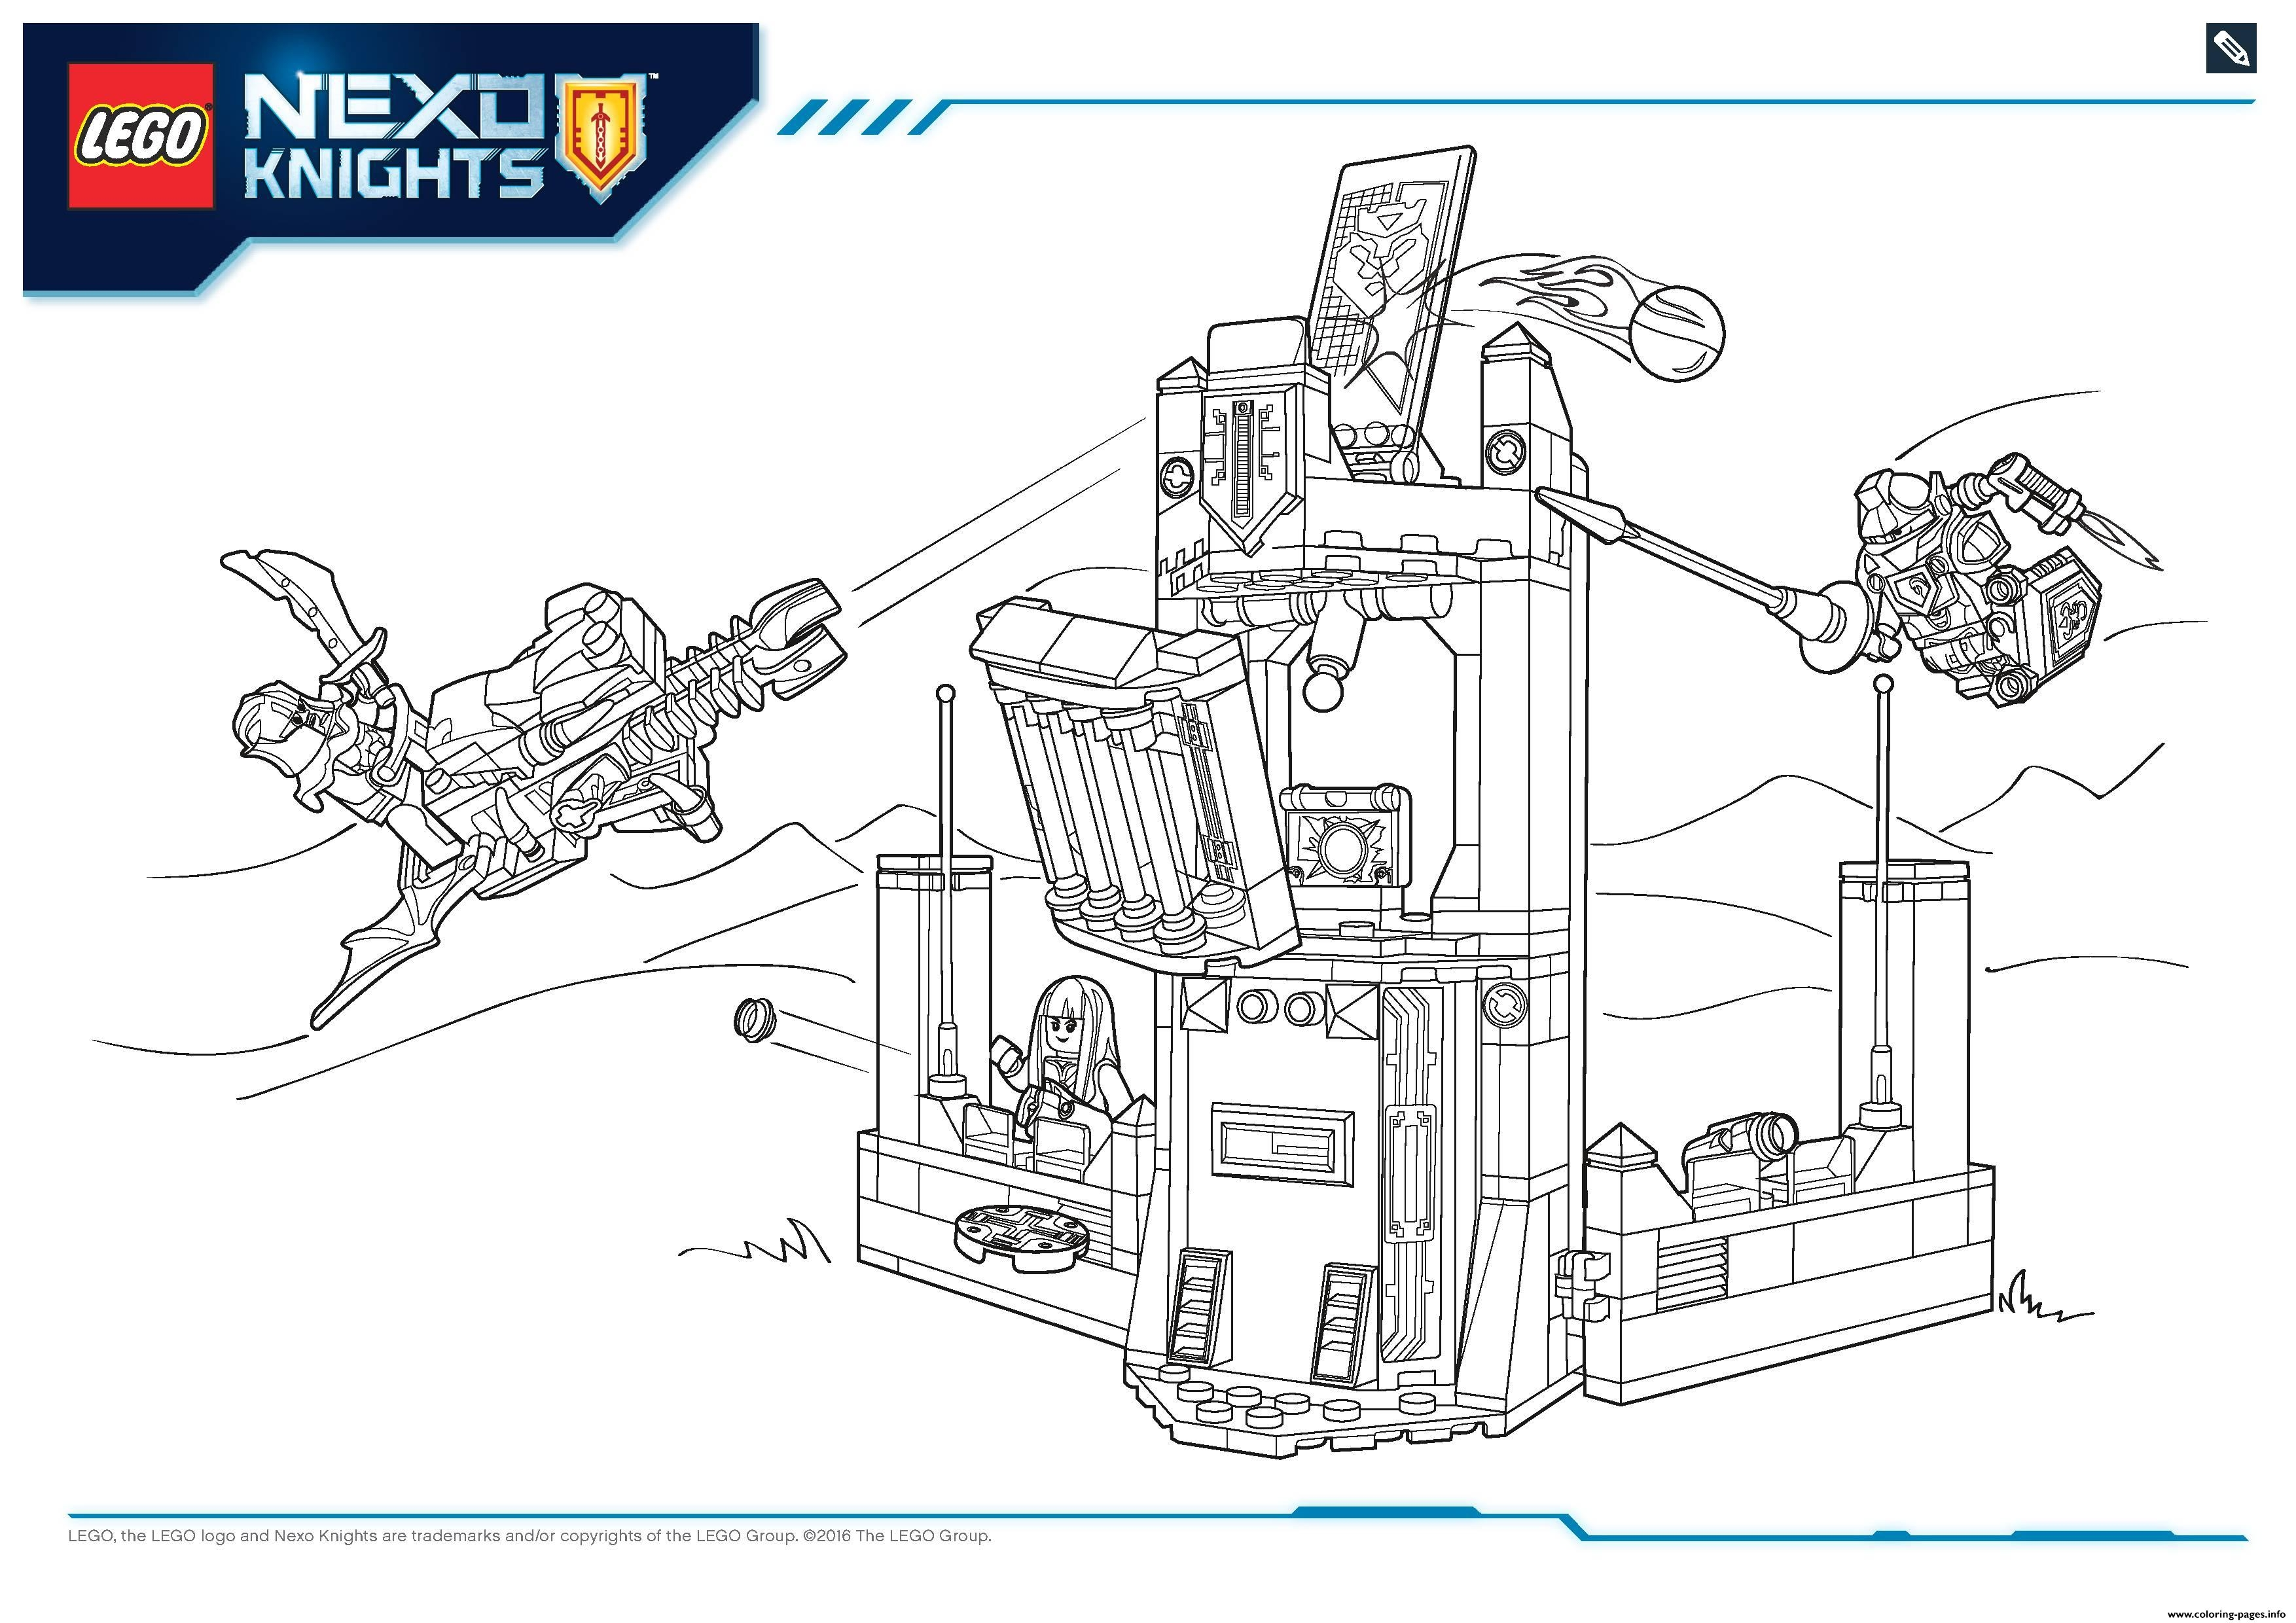 Ausmalbilder Lego Nexo Knights Malvorlagen power uff girls coloring ...